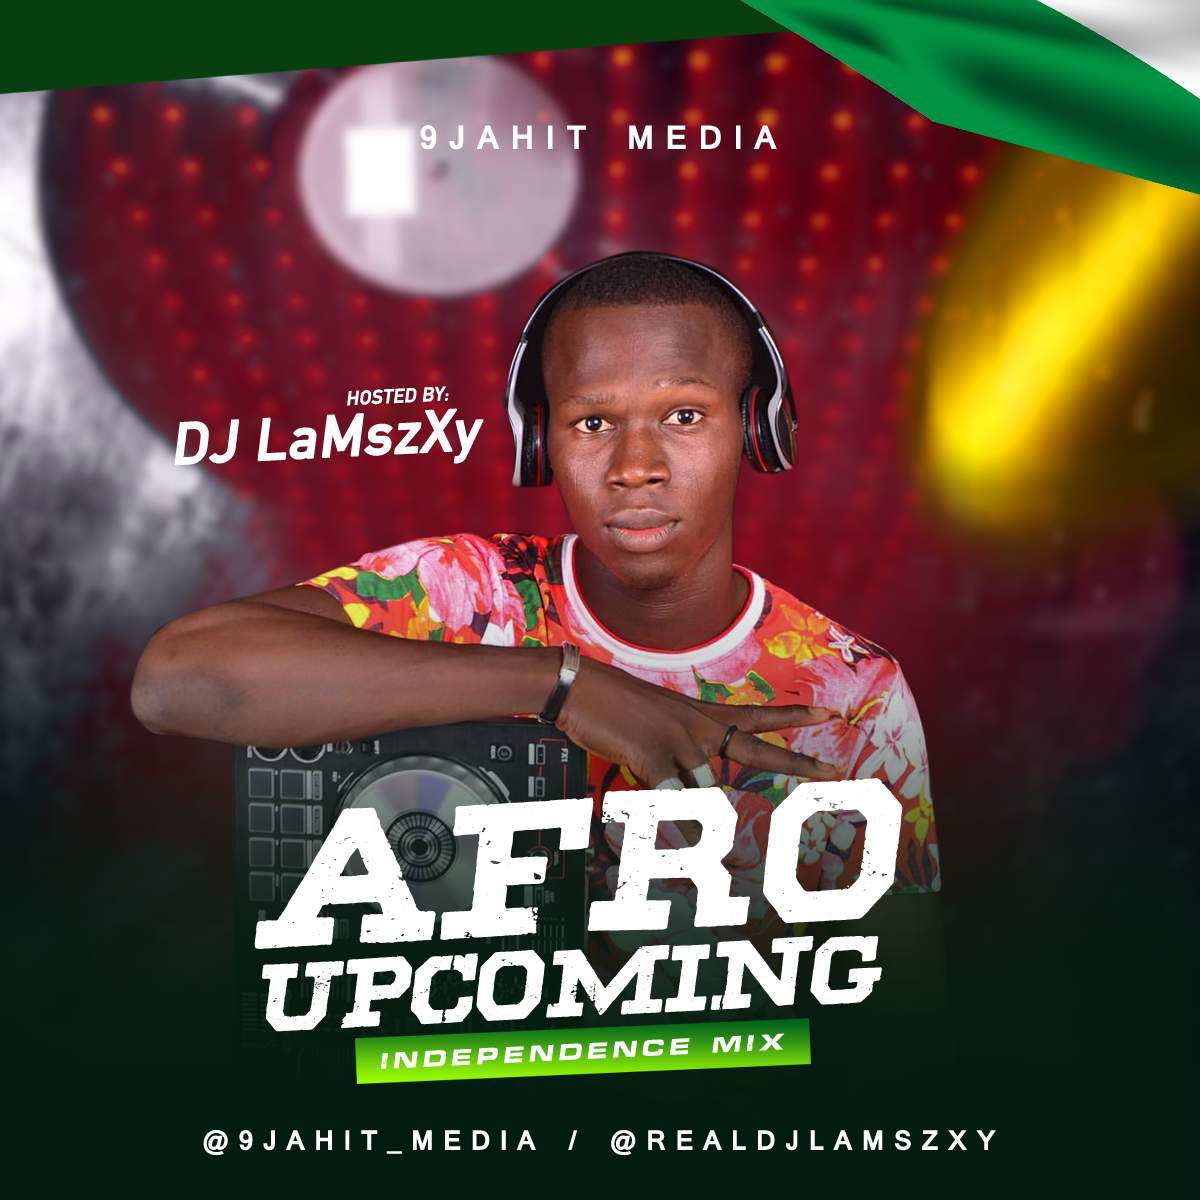 Dj LaMszXy – Afro Upcoming (Independence Mix) Mp3 Download